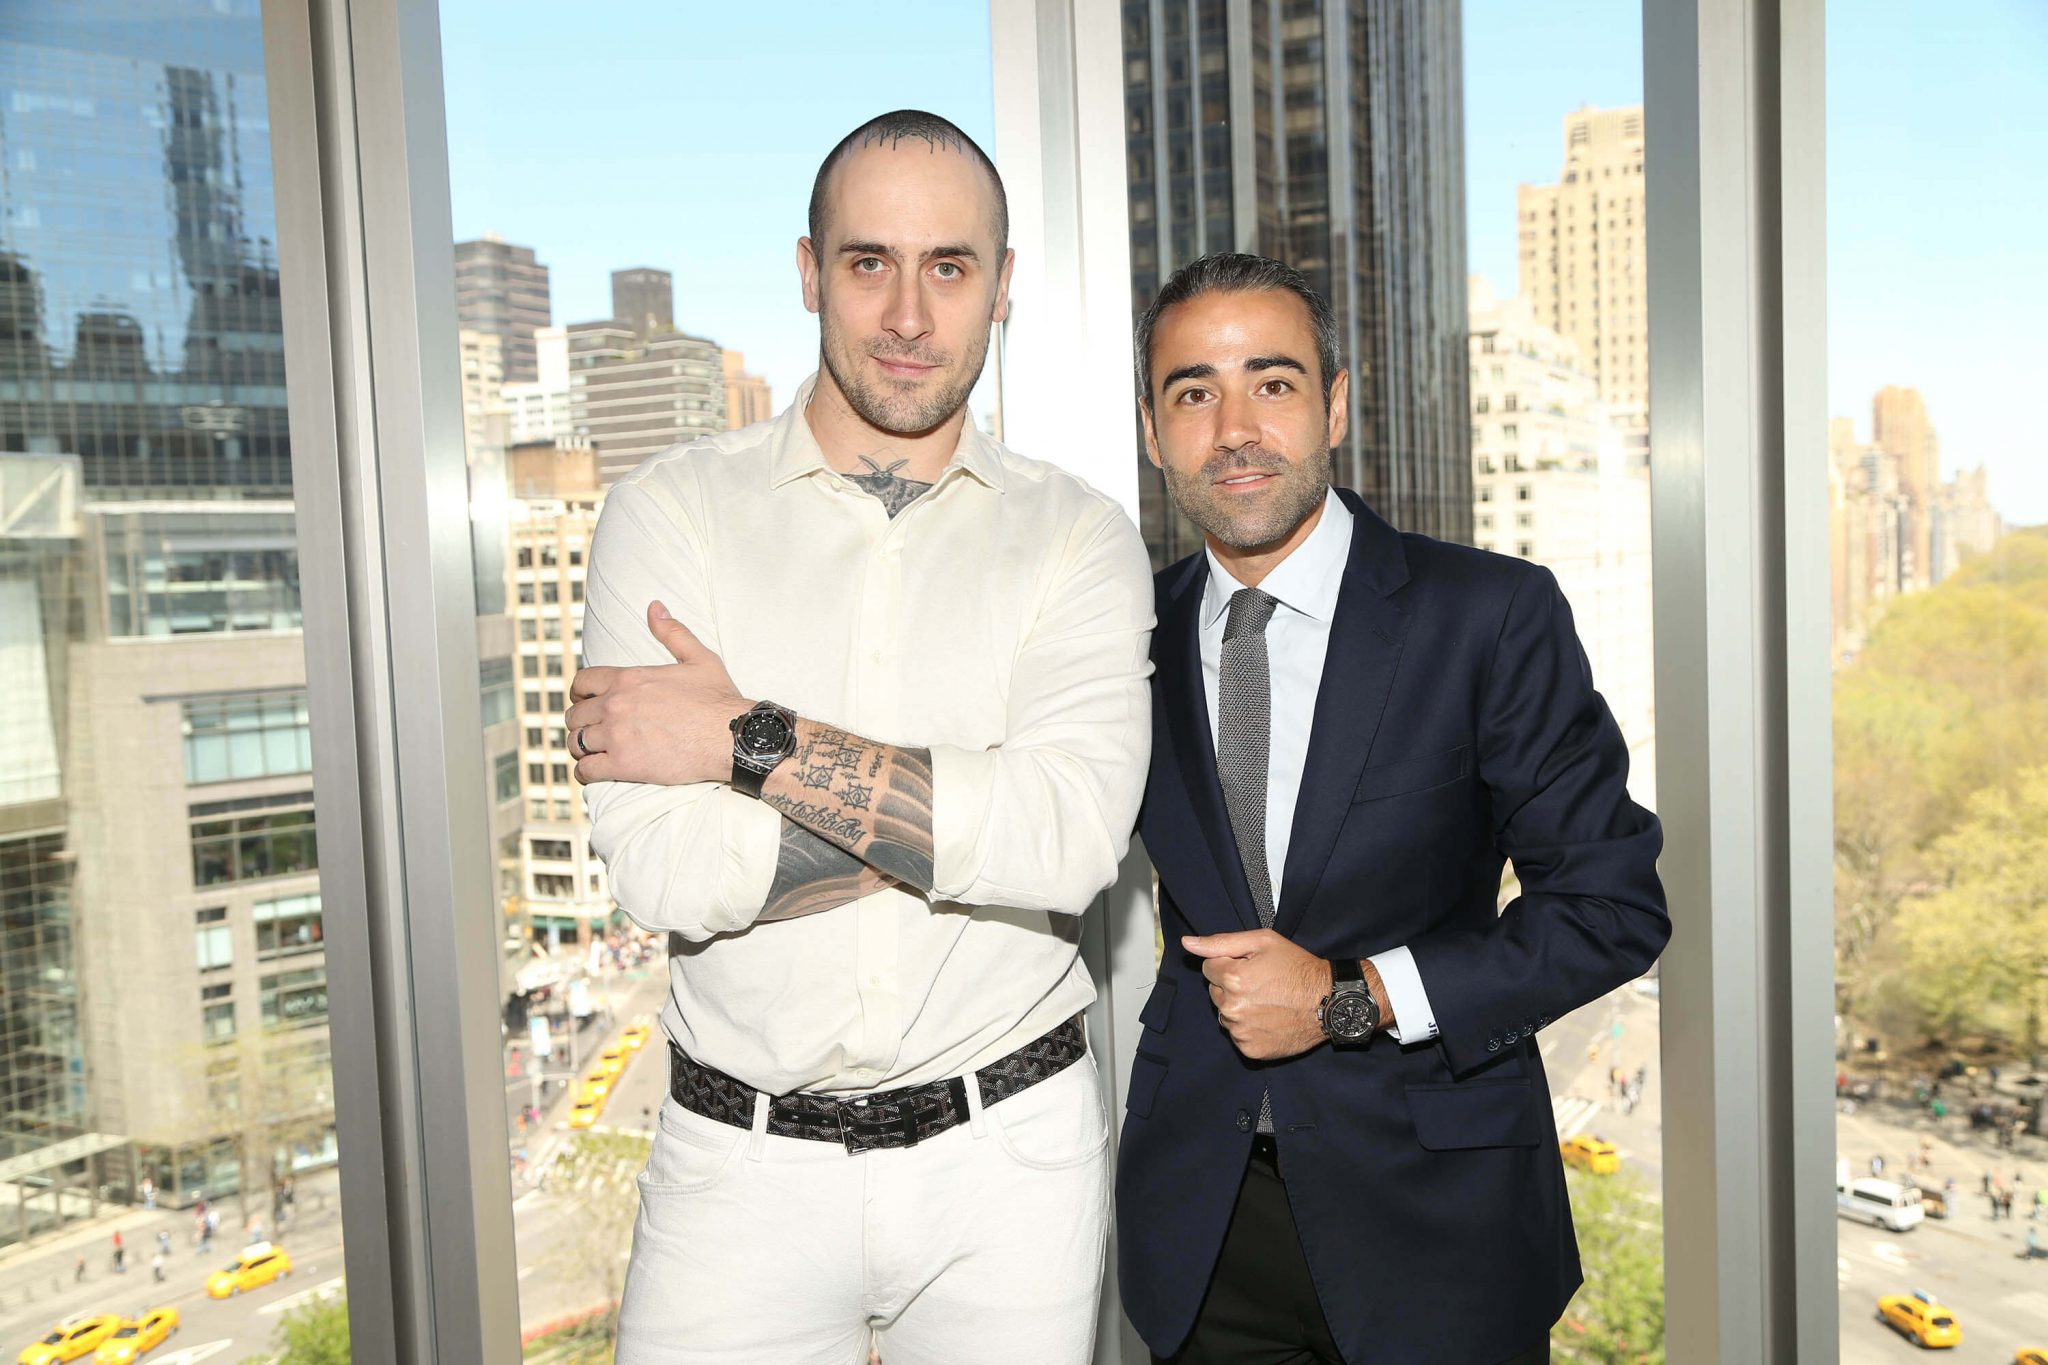 Maxime Büchi and Jean-François Sberro (General Manager of Hublot America